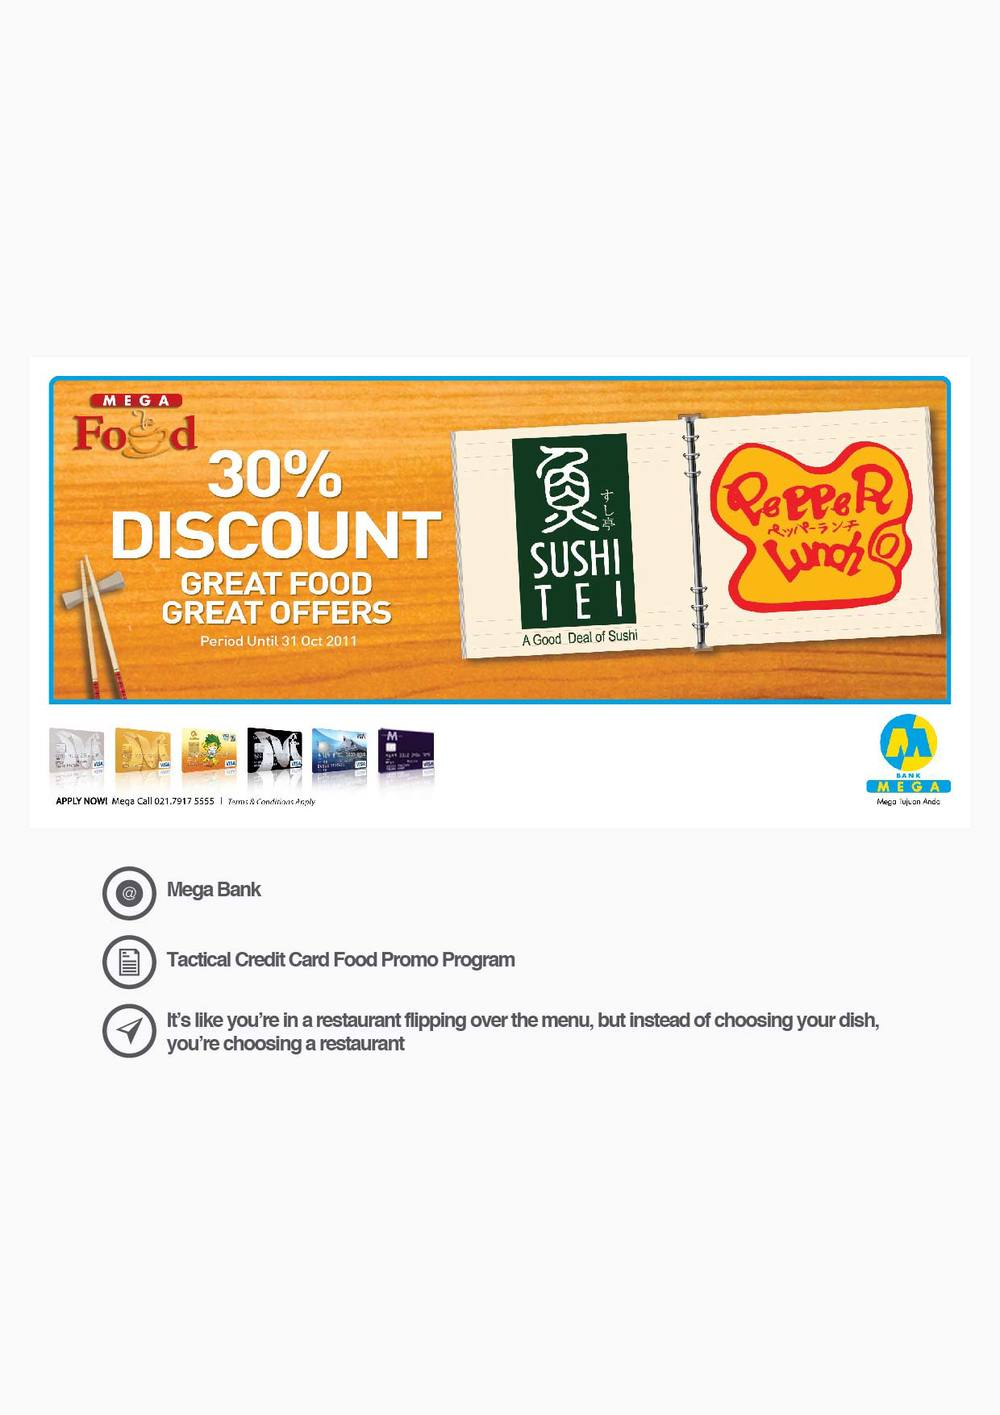 Mega Bank Tactical Credit Card Food Promo Program